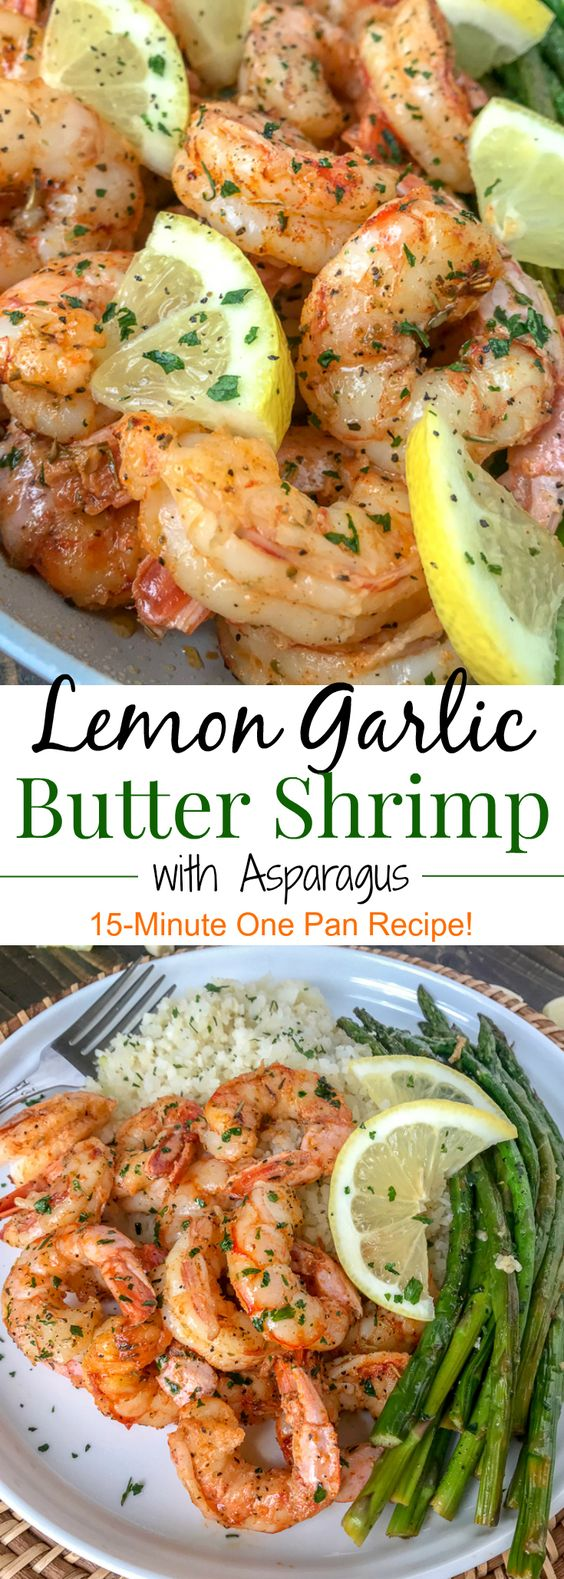 Lemon Garlic Butter Shrimp with Asparagus - this is an easy, light and healthy dinner option that is cooked in one pan and can be on your table in 15 minutes. Buttery shrimp and asparagus flavored with lemon juice and garlic. Only 309 calories per serving!